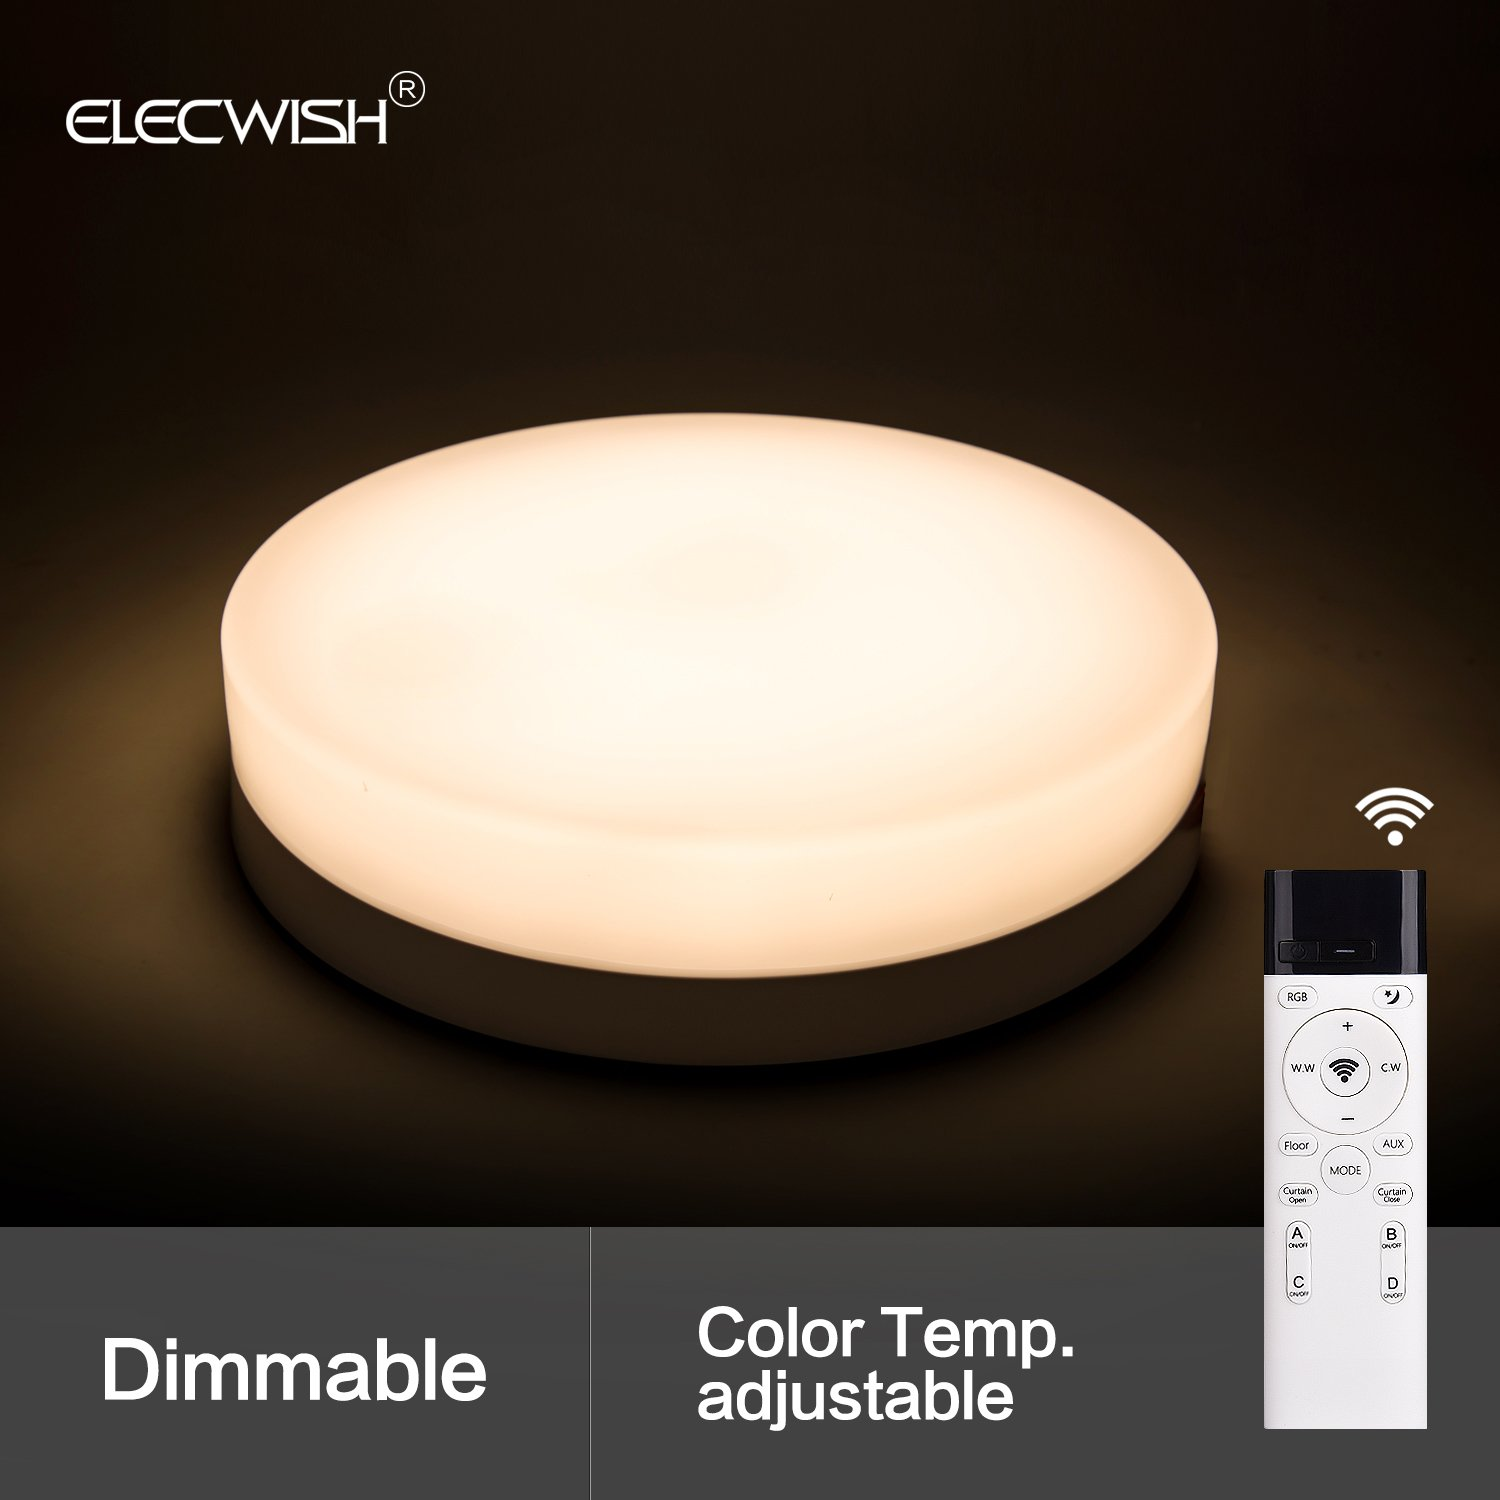 Elecwish 12 Smart Led Ceiling Light Flush Mount Wireless Remote 110v 220v Dimmer Circuit With Active Reset Control Fixture Stepless Dimming Acrylic Cover 29closed